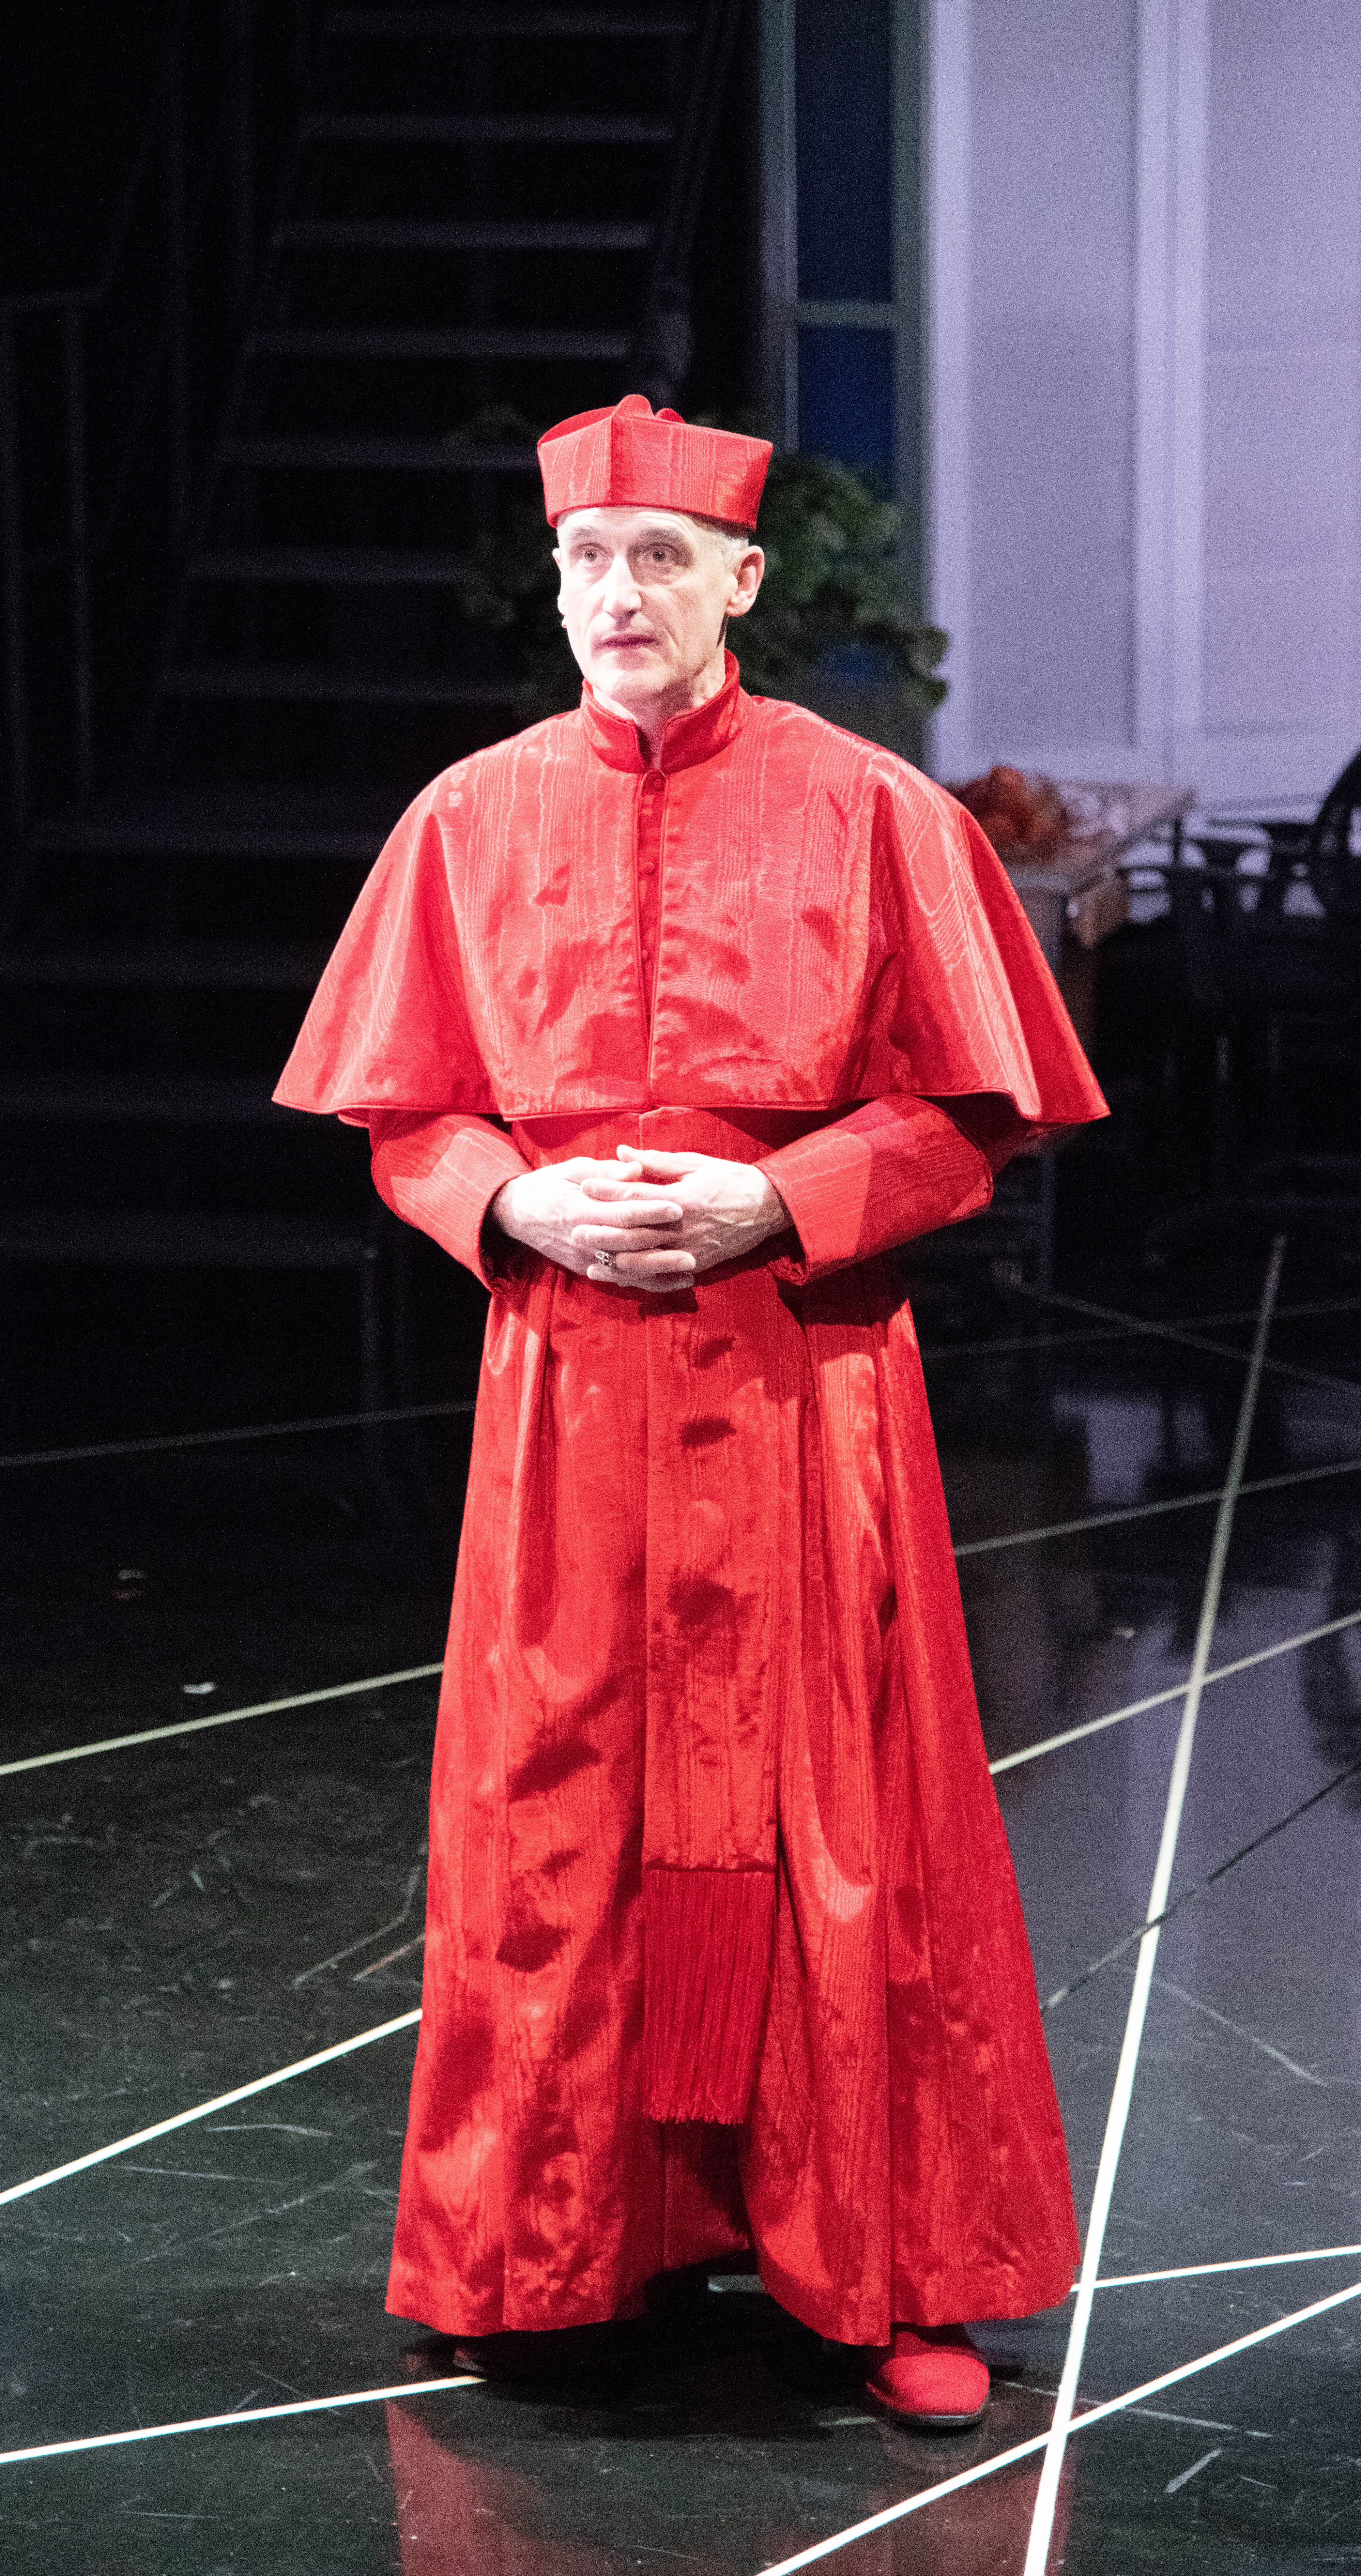 Character: Cardinal Inquisitor